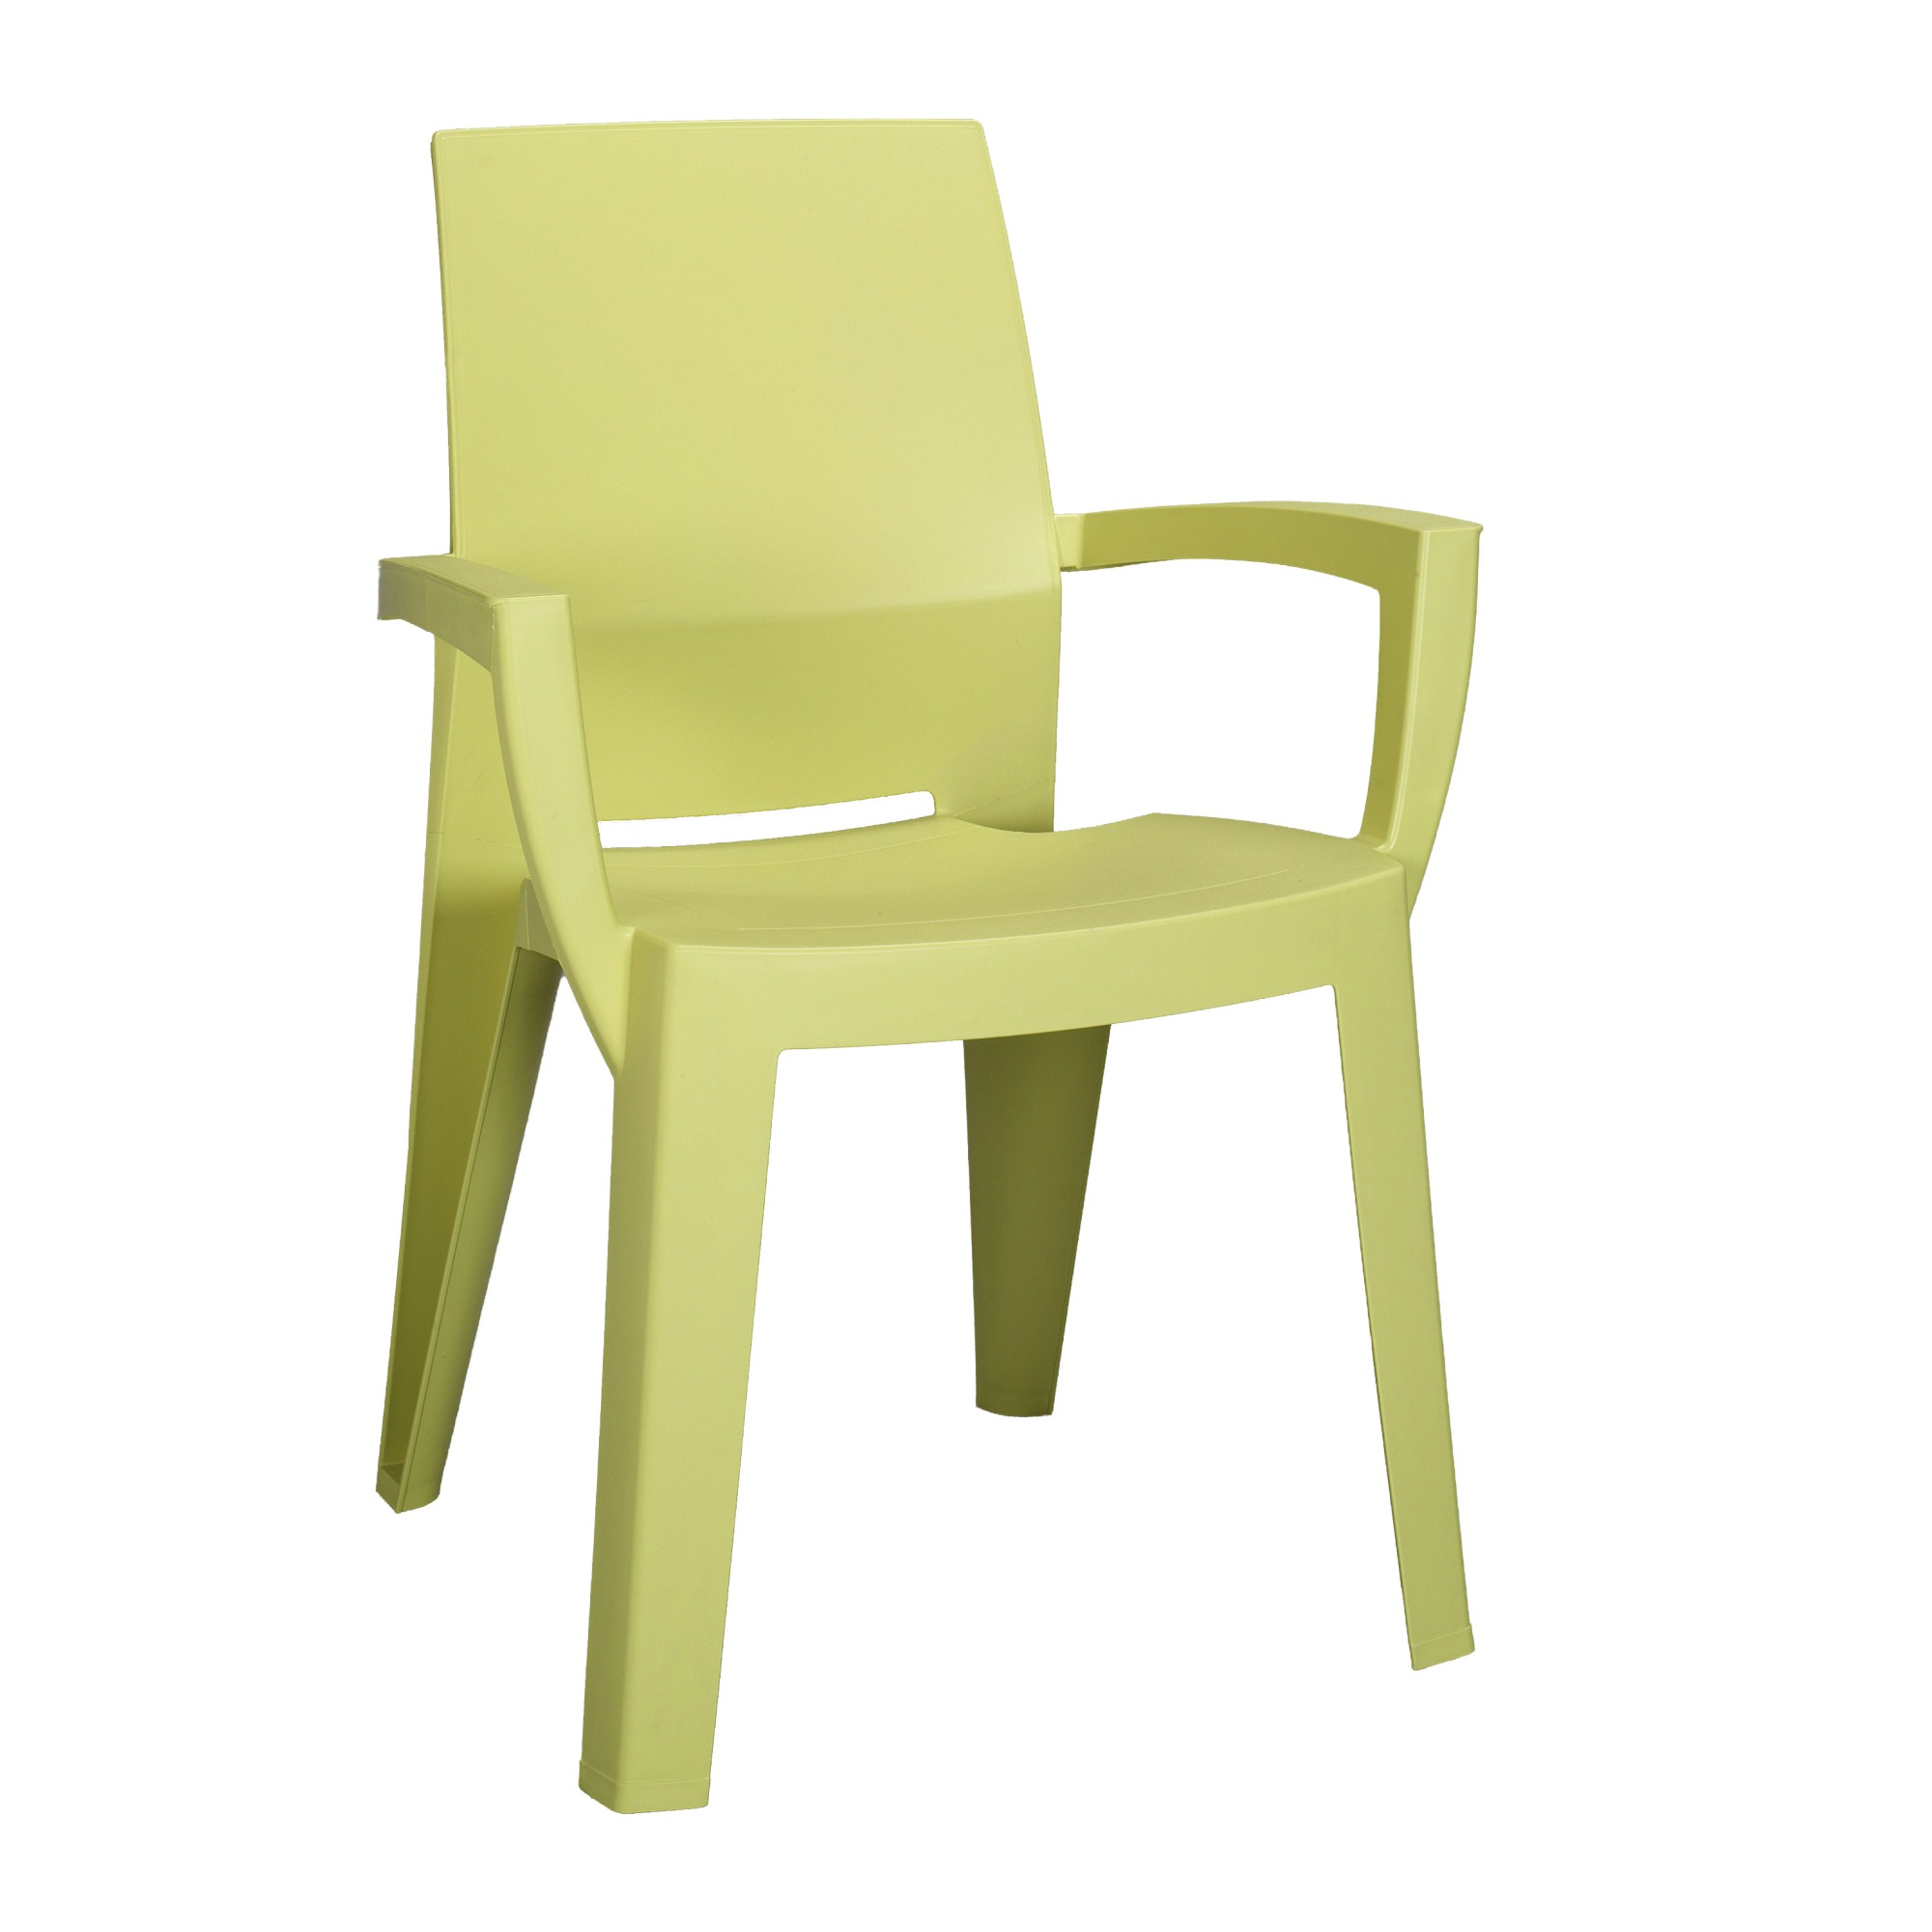 Chaise lago allibert lime chaises fauteuils de jardin for Chaise jardin